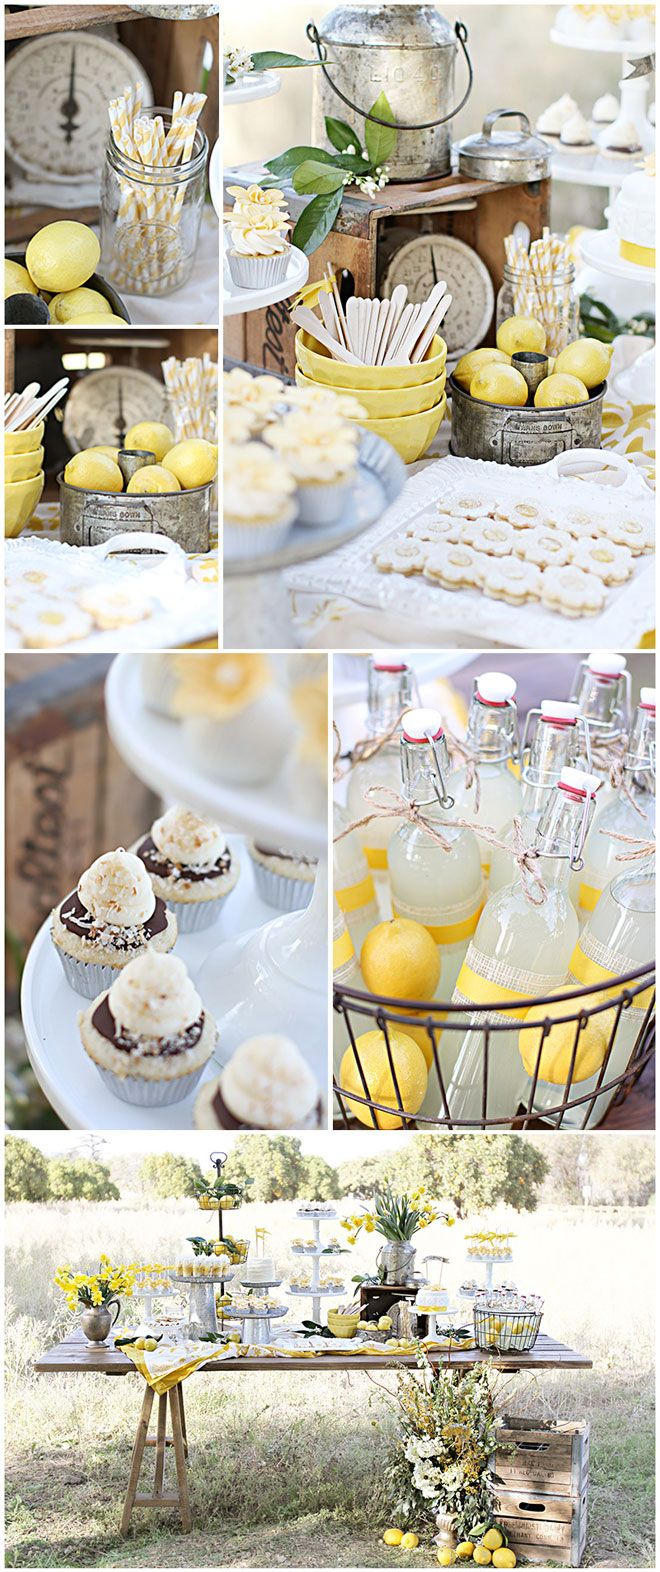 Lemon Garden Party 1 ~  Old farmhouse style furniture, vintage tins, yellow glass and rustic accents.  Tin containers of all shapes and sizes  bouquets of daffodils or other seasonal yellow flowers